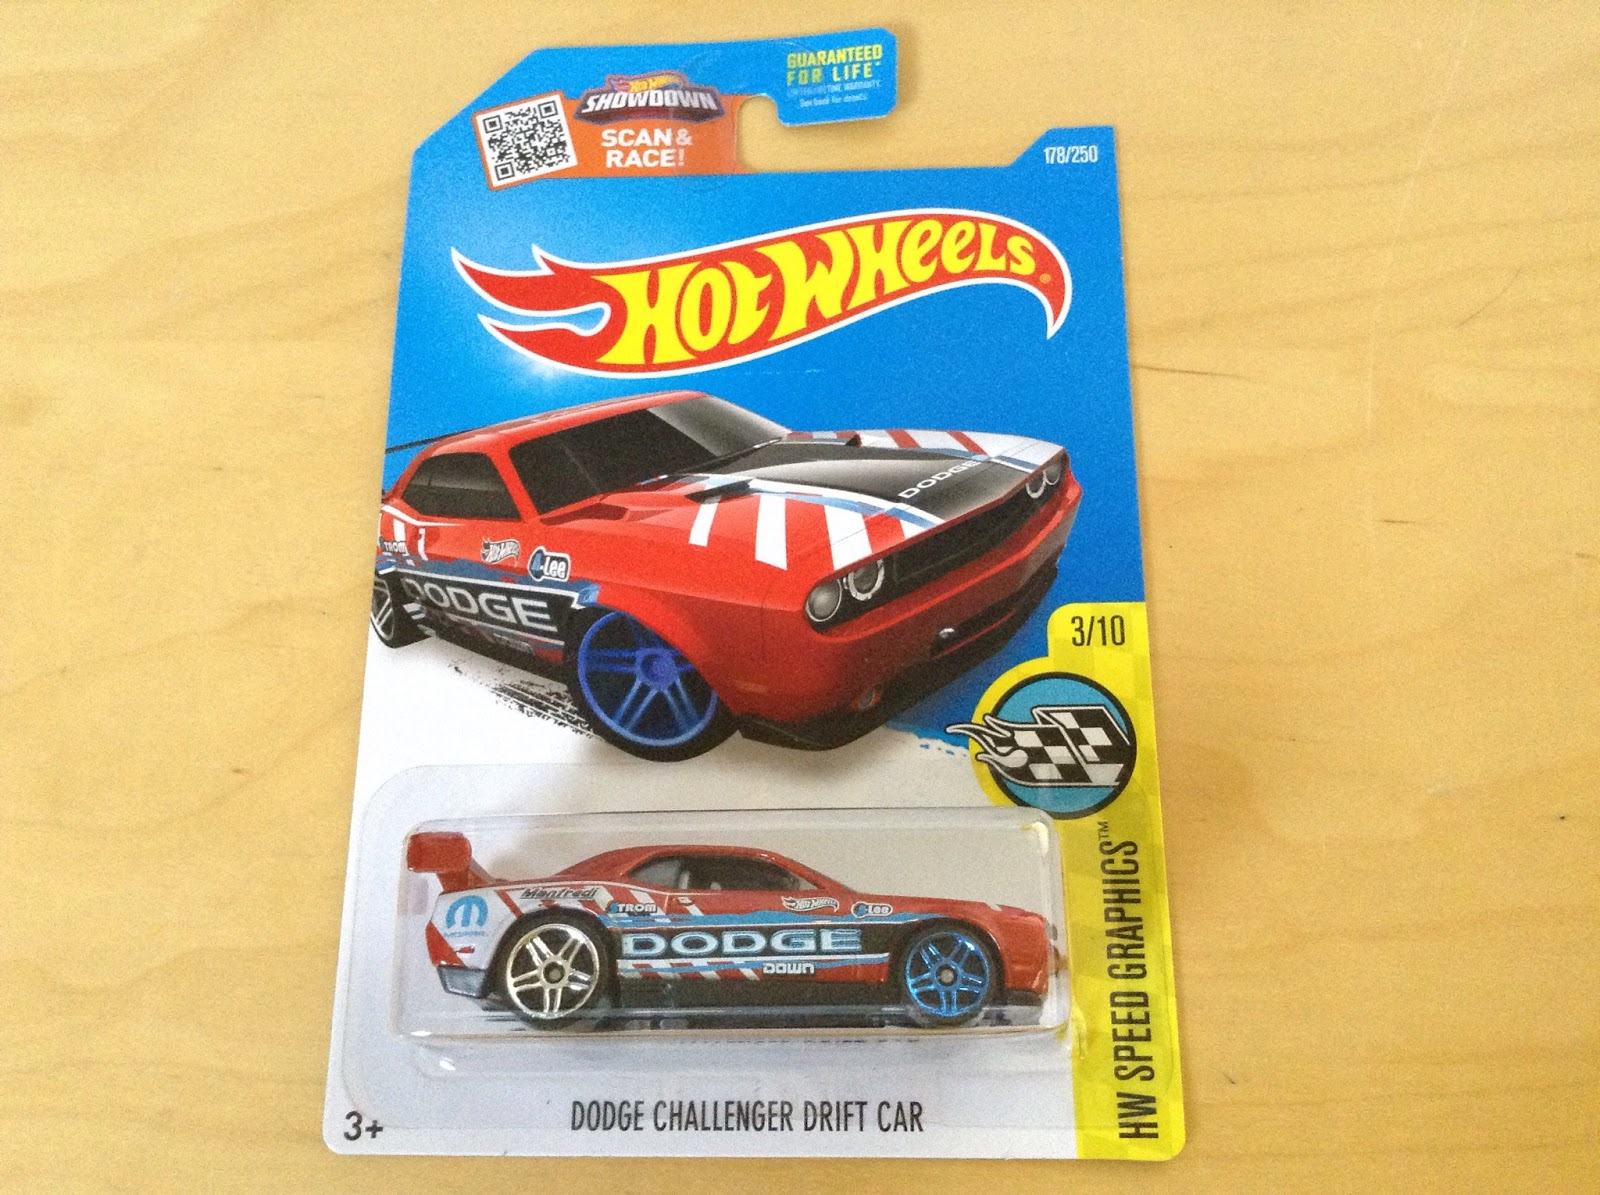 Julian 39 s hot wheels blog dodge challenger drift car 2016 for 9 salon hot wheels 2016